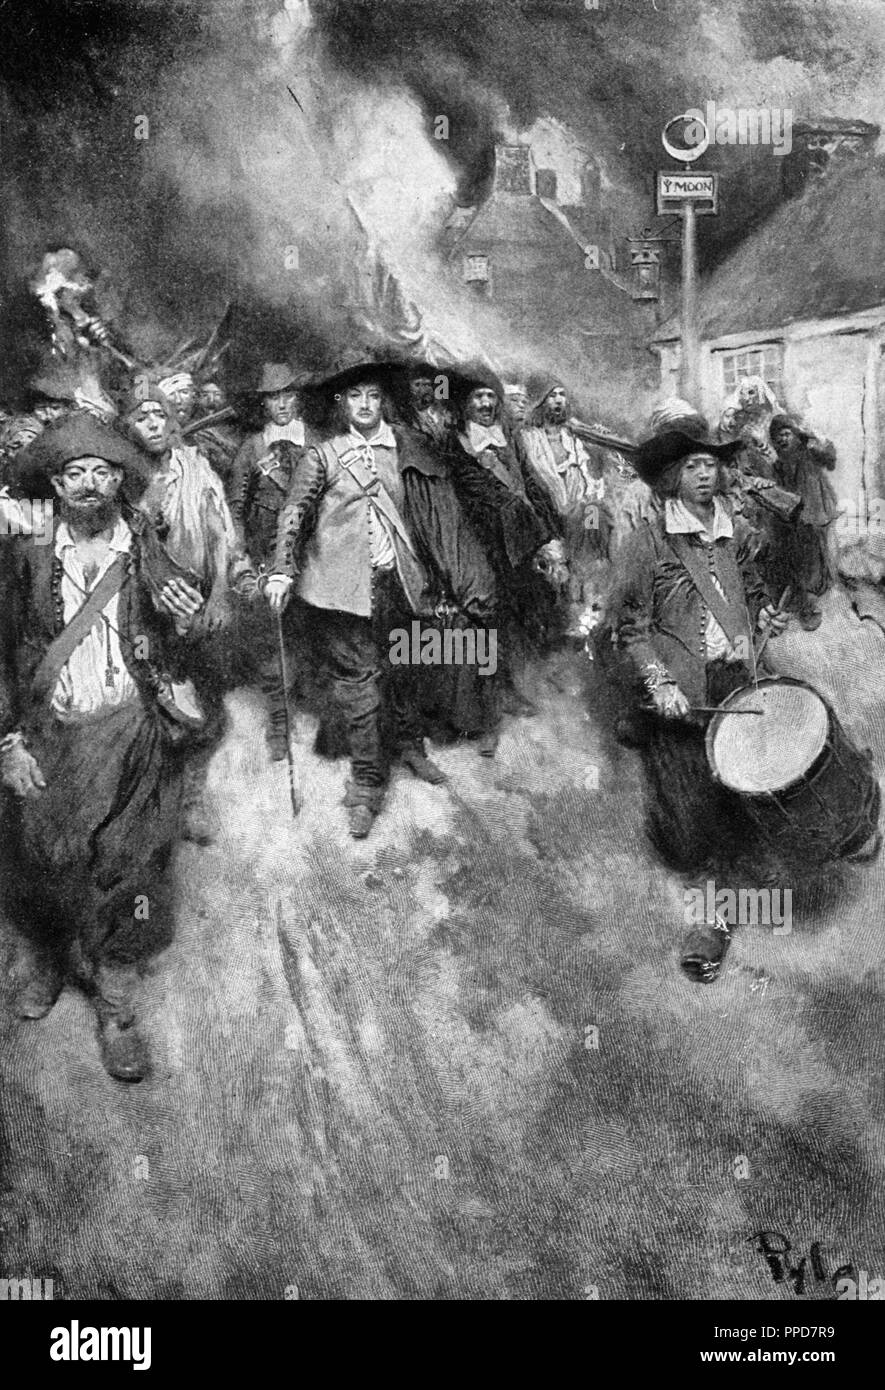 The Burning of Jamestown by Howard Pyle (signature lower right corner). It depicts the burning of Jamestown, Virginia during Bacon's Rebellion Stock Photo